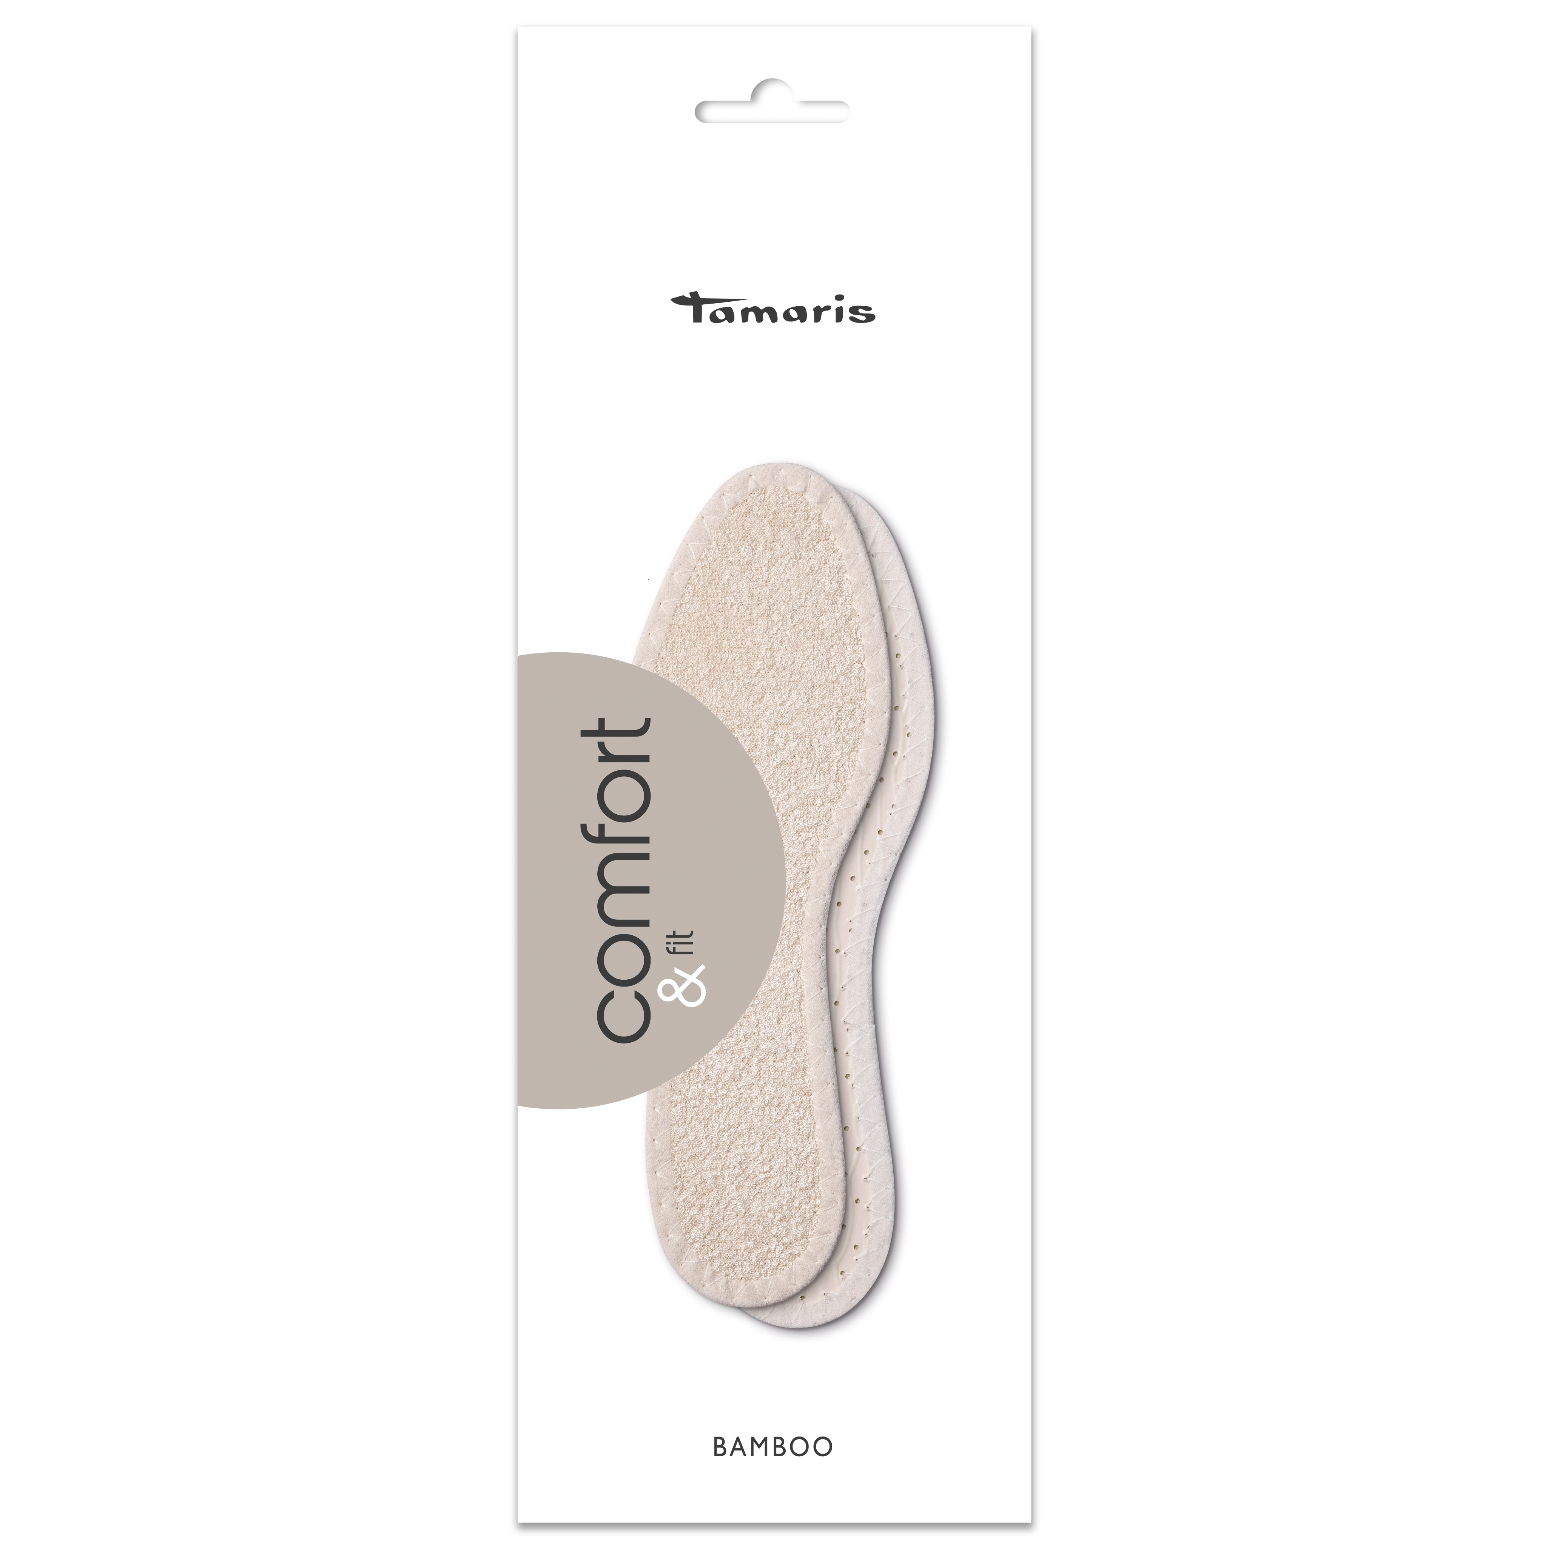 Bamboo Barefoot Insole